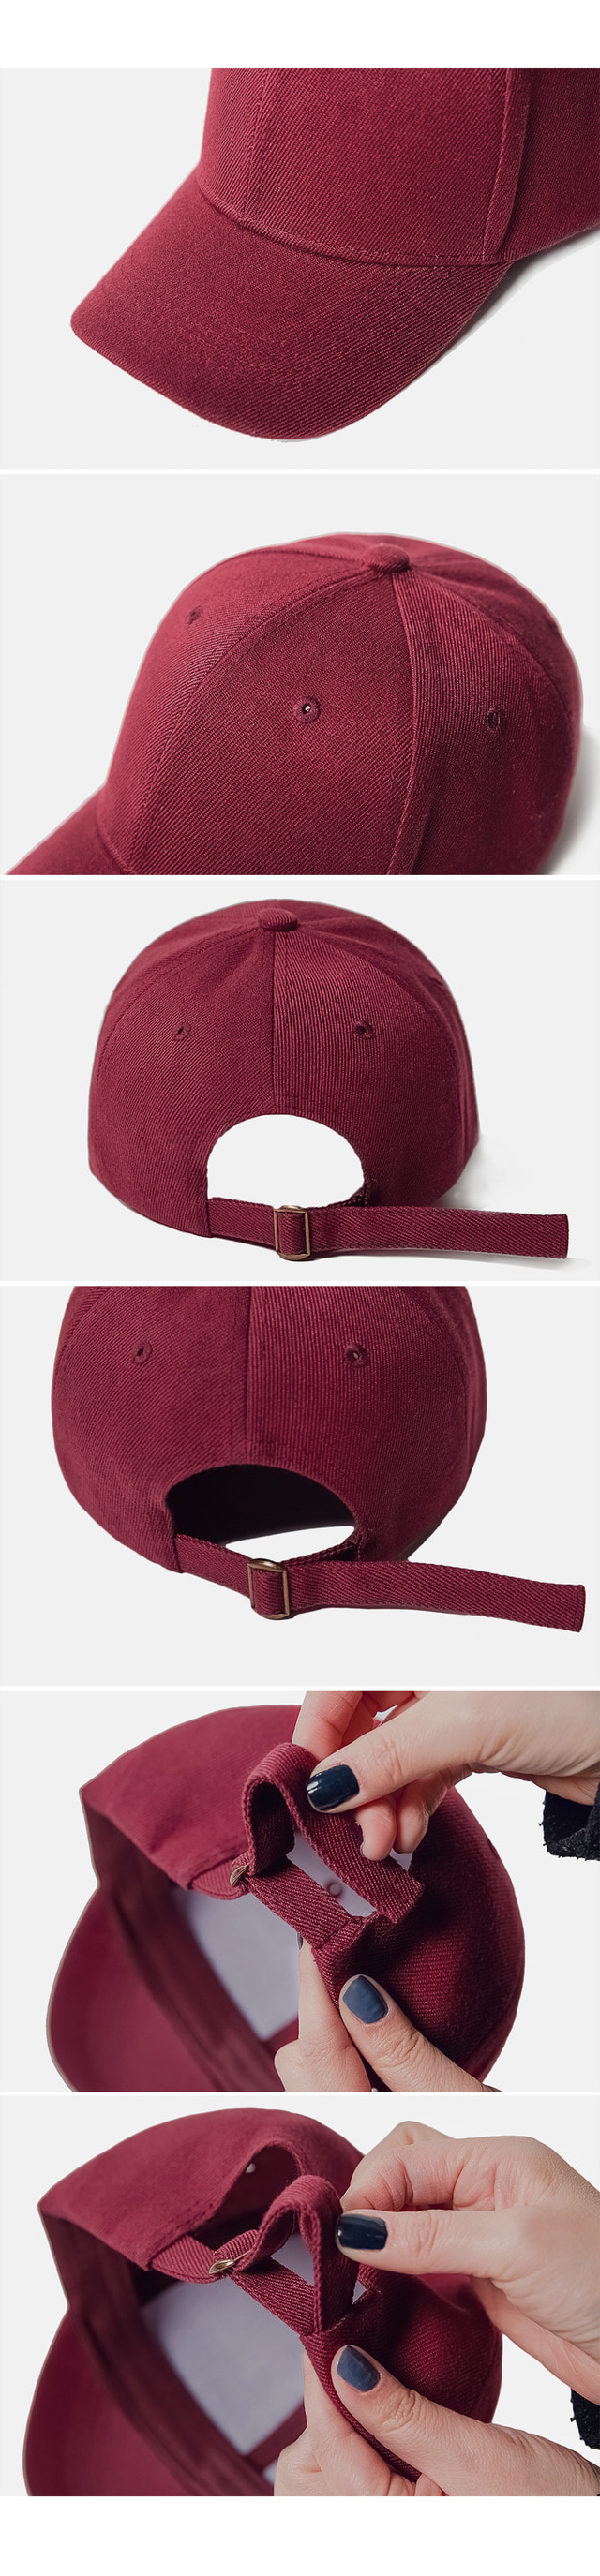 1+1 small-face ballcap